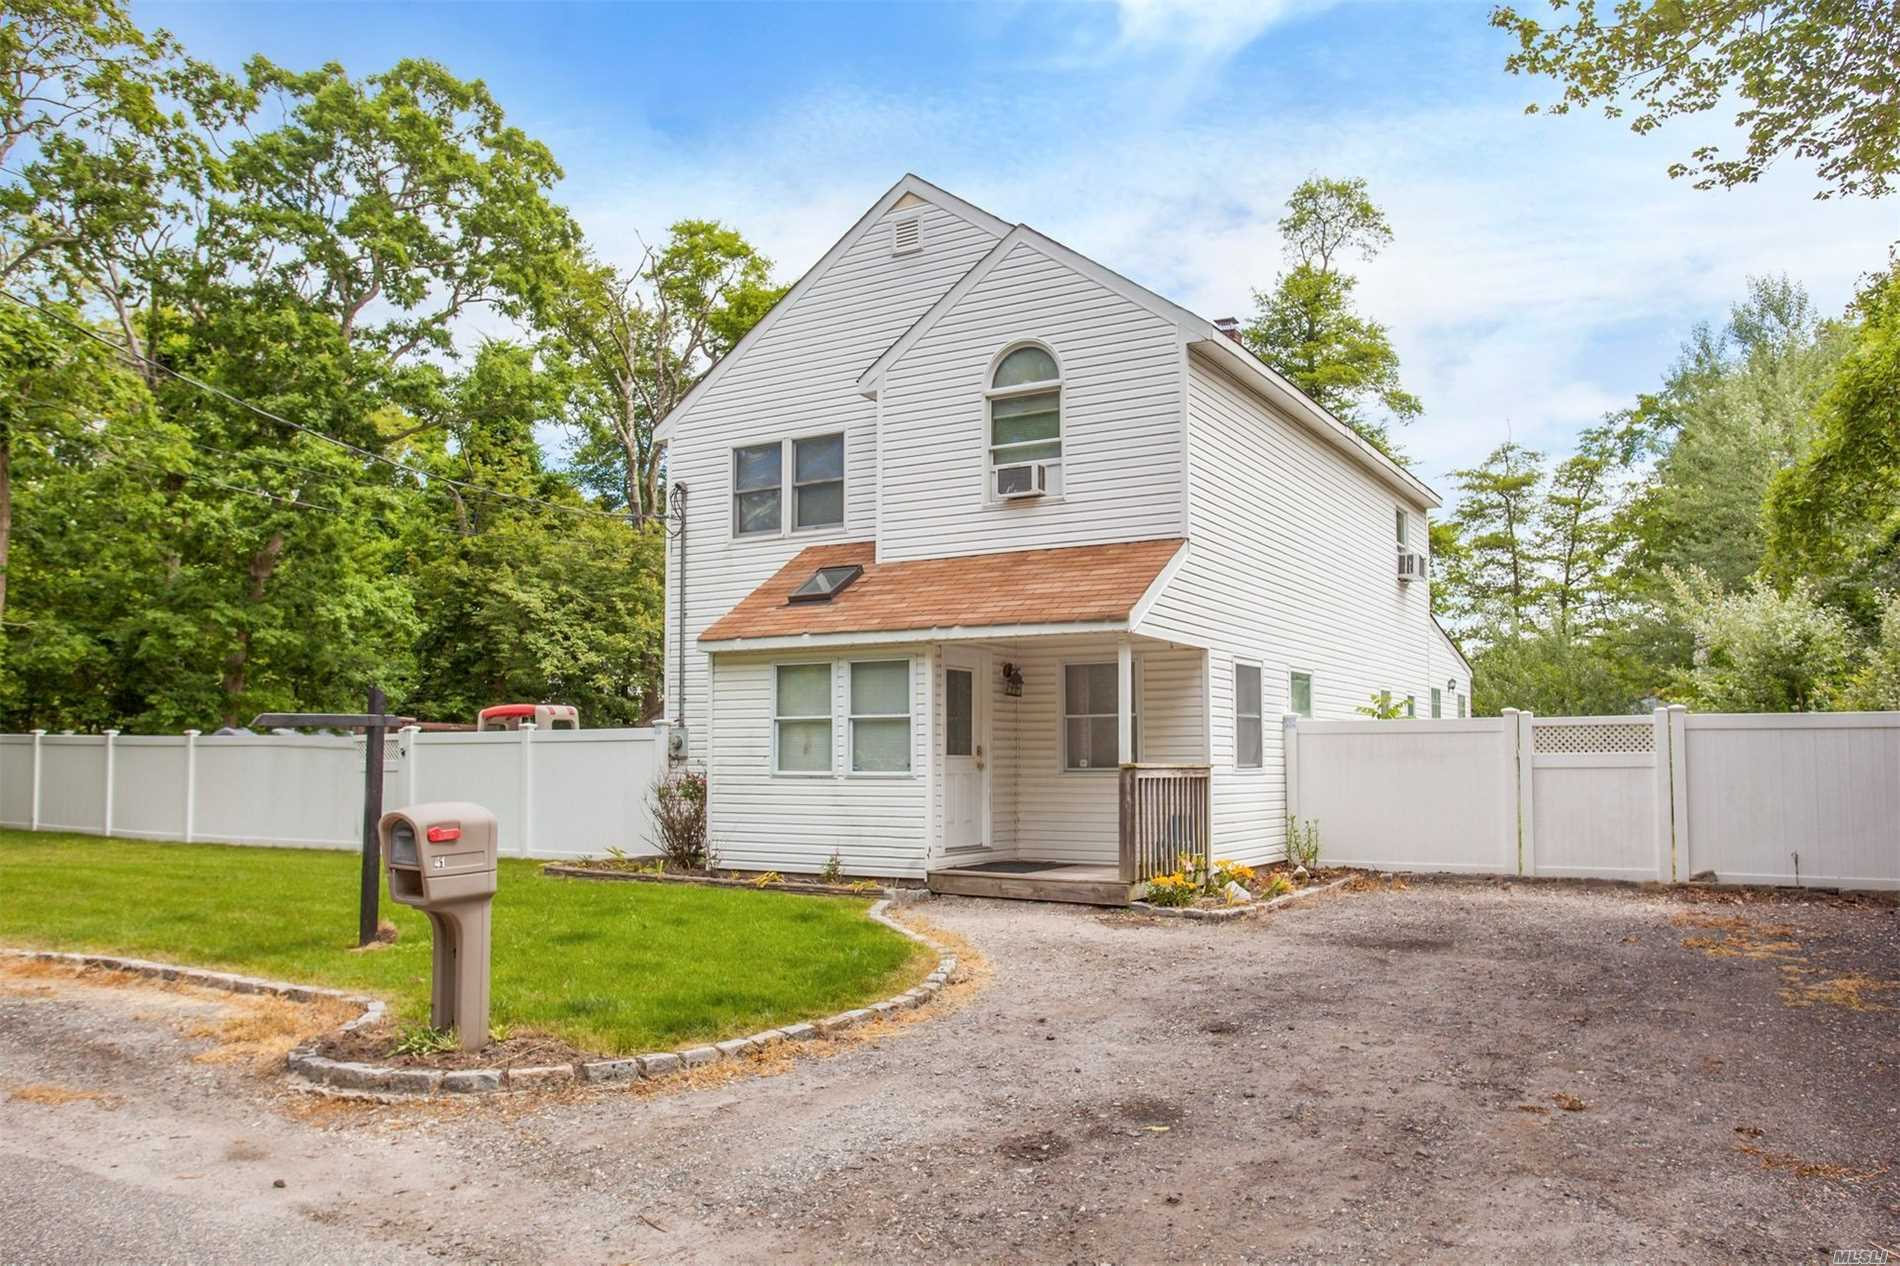 41 West Dr - Mastic Beach, New York